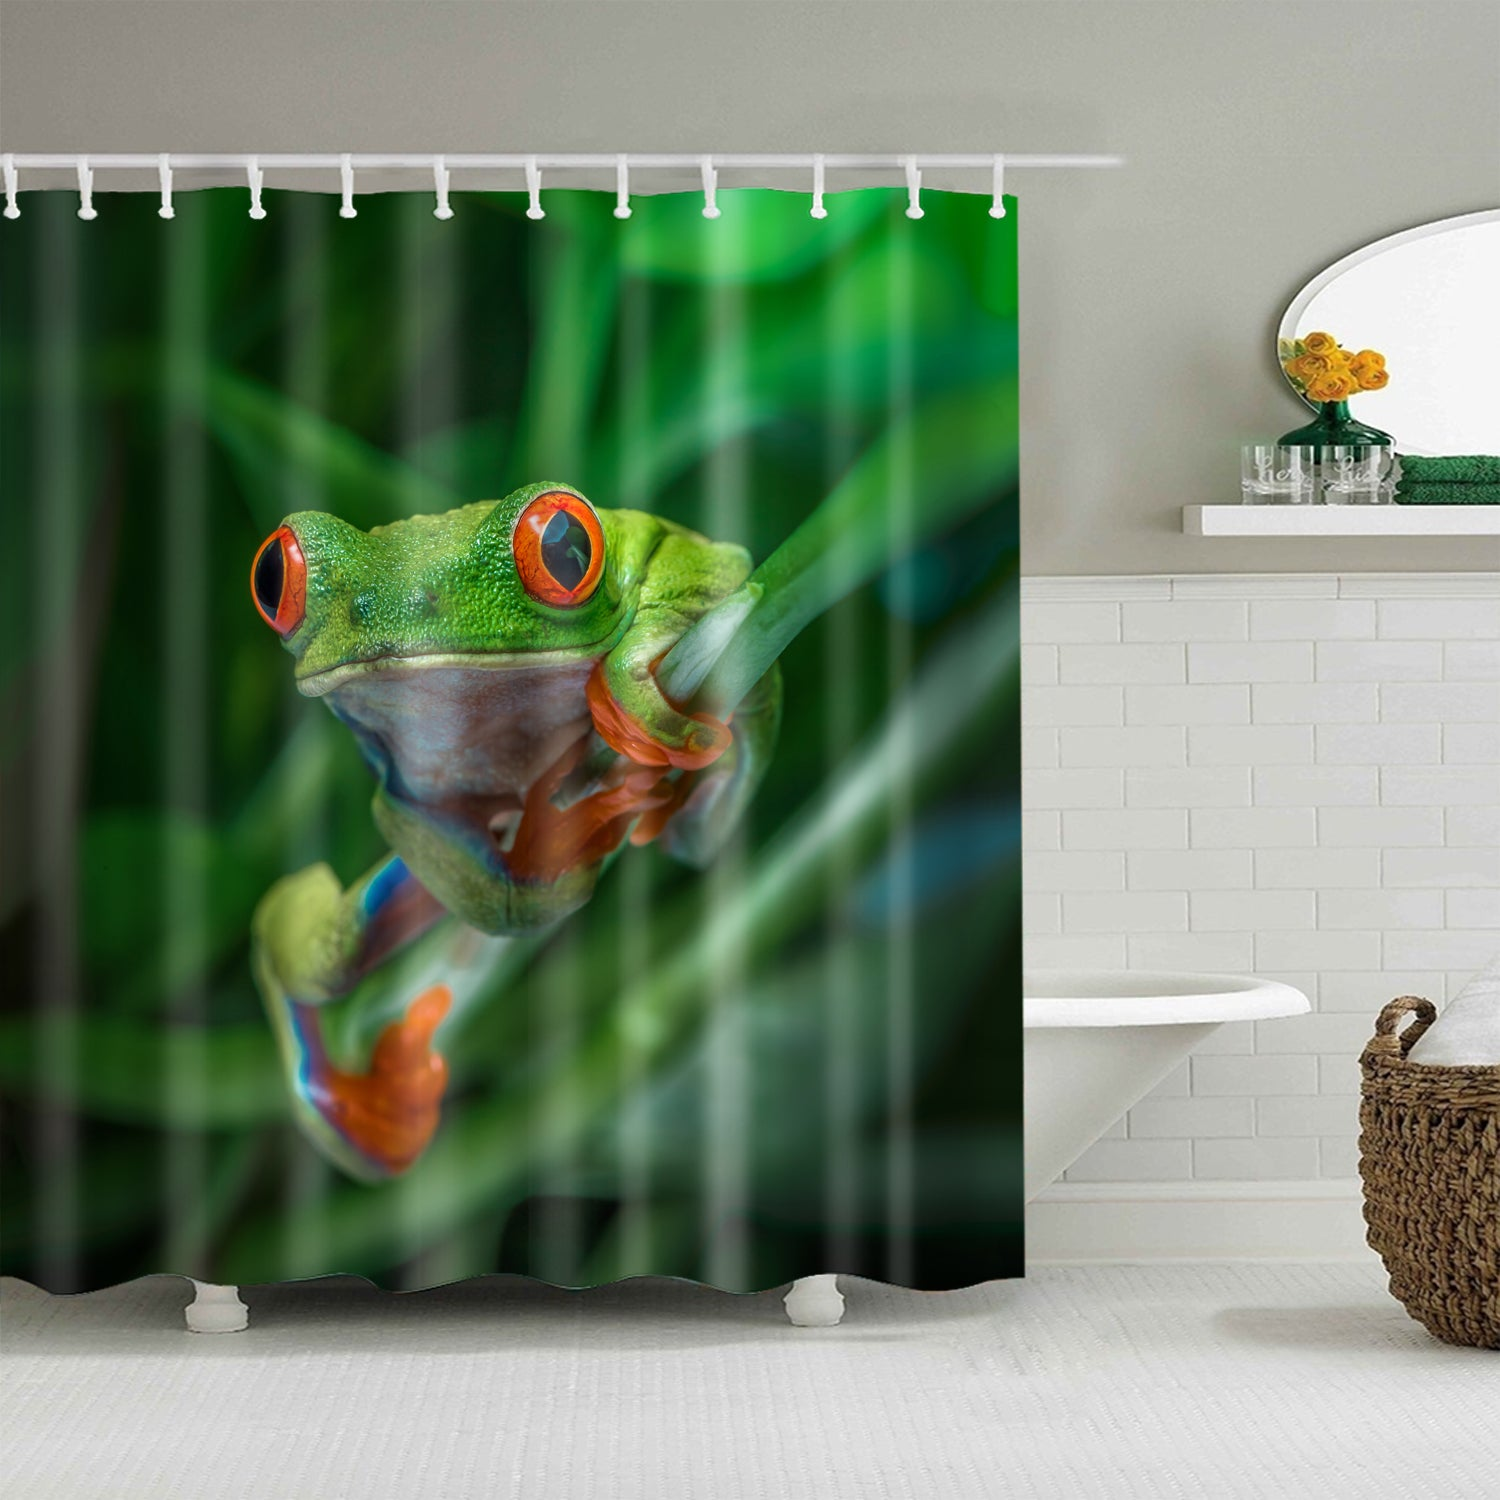 Green Rainforest Red-Eyed Tree Frog Shower Curtain